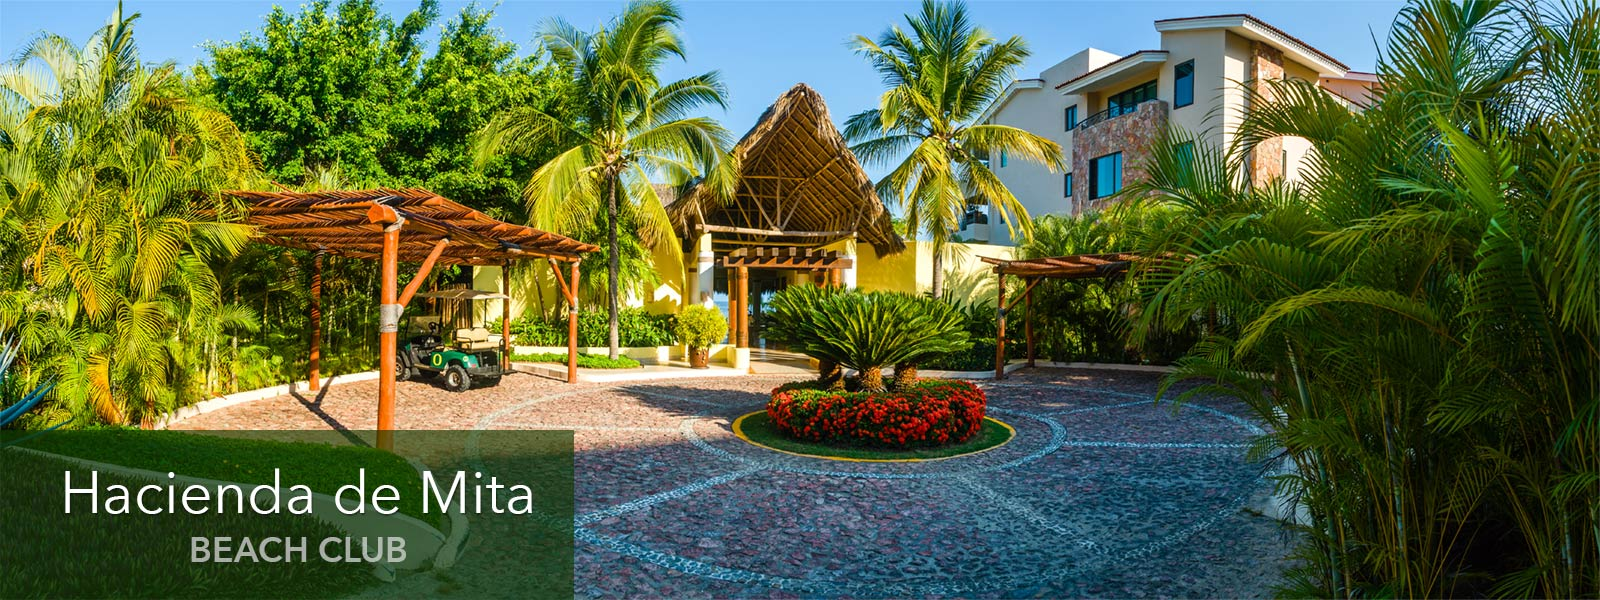 Hacienda de Mita Beach Club - Luxury Punta Mita Mexico condos for sale and rent